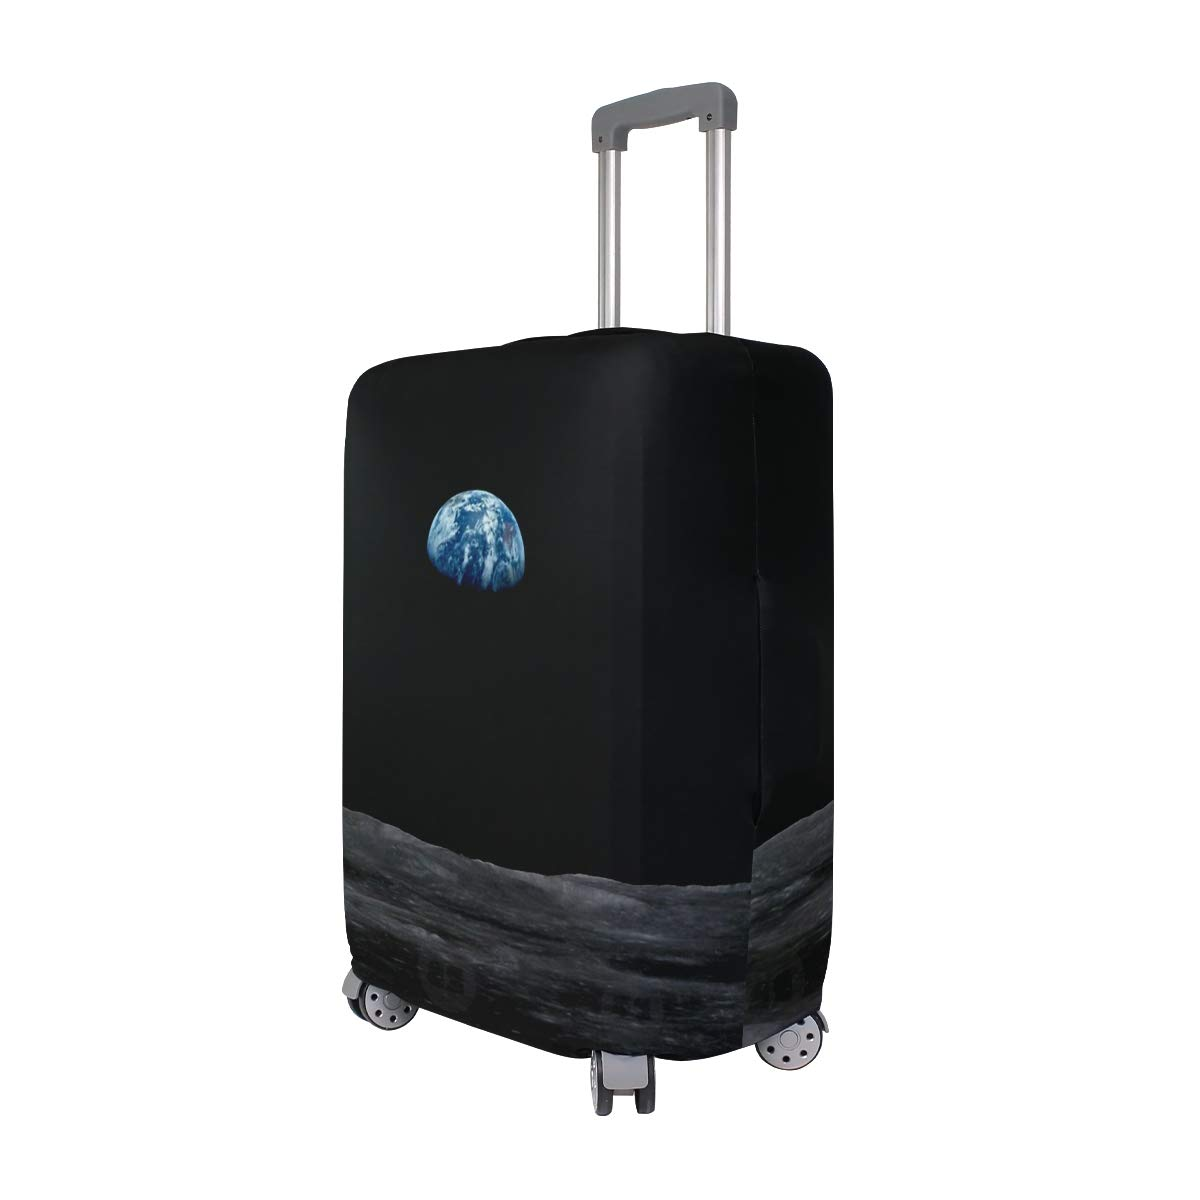 Blue Sky Marble Traveler Lightweight Rotating Luggage Cover Can Carry With You Can Expand Travel Bag Trolley Rolling Luggage Cover